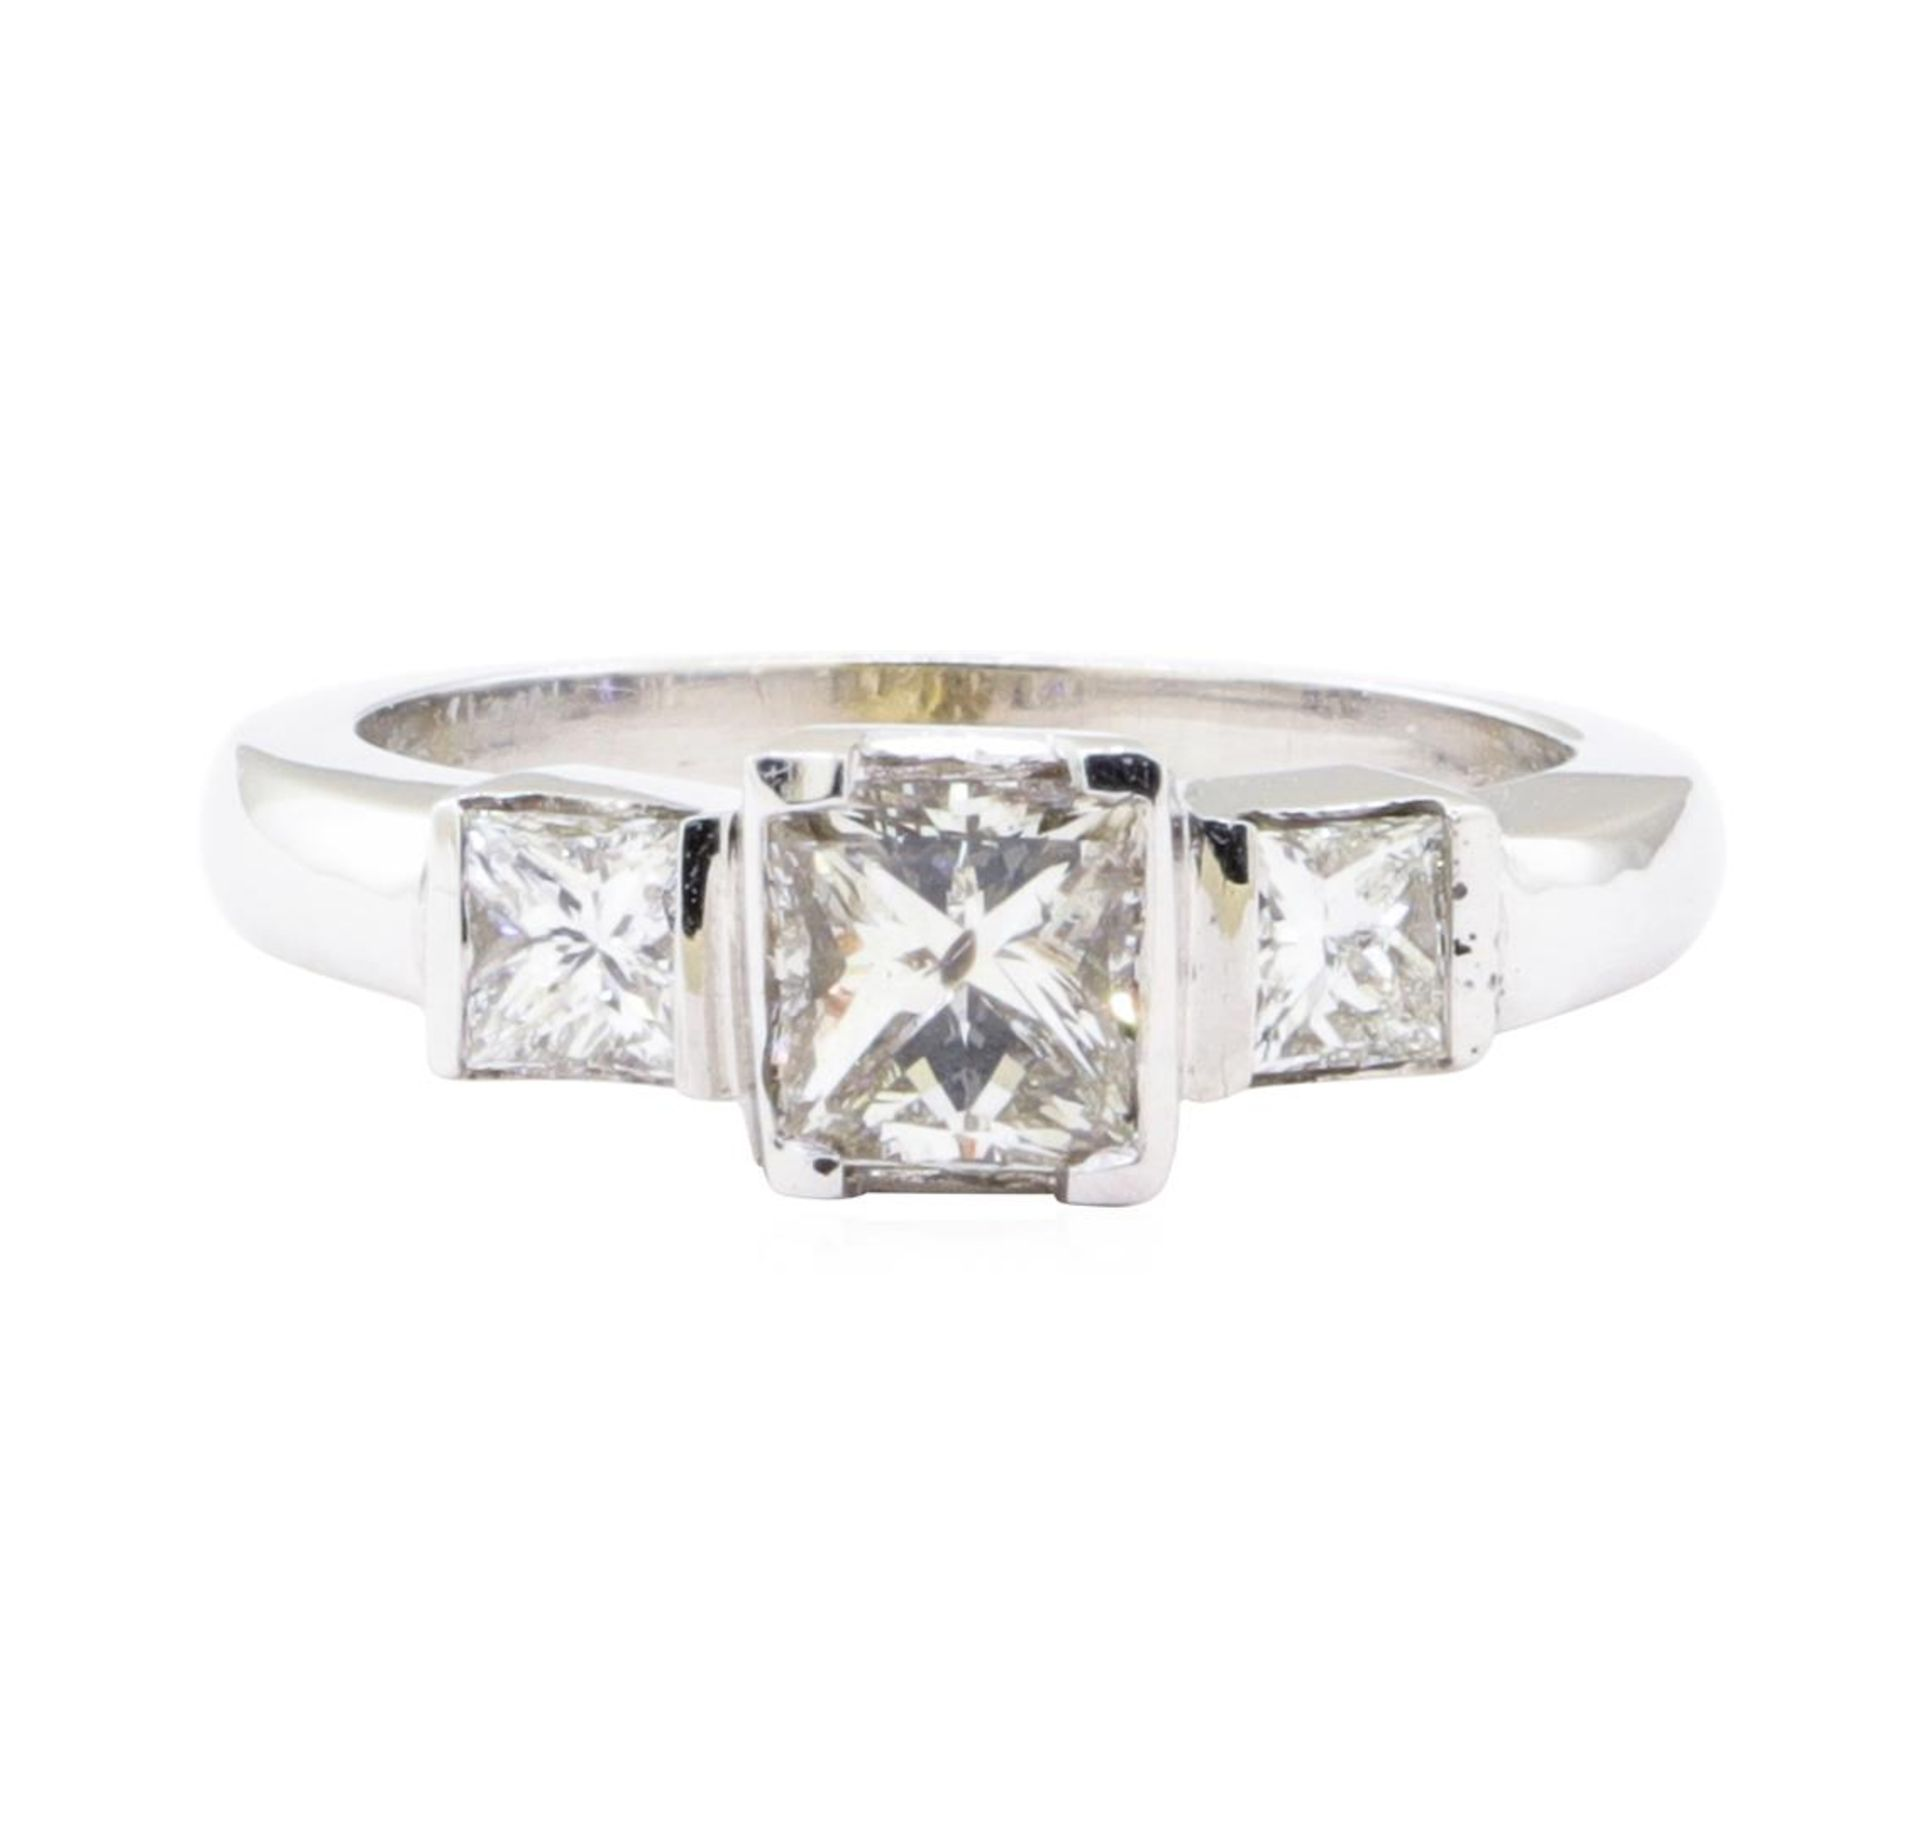 1.45 ctw Diamond Ring - 14KT White Gold - Image 2 of 5